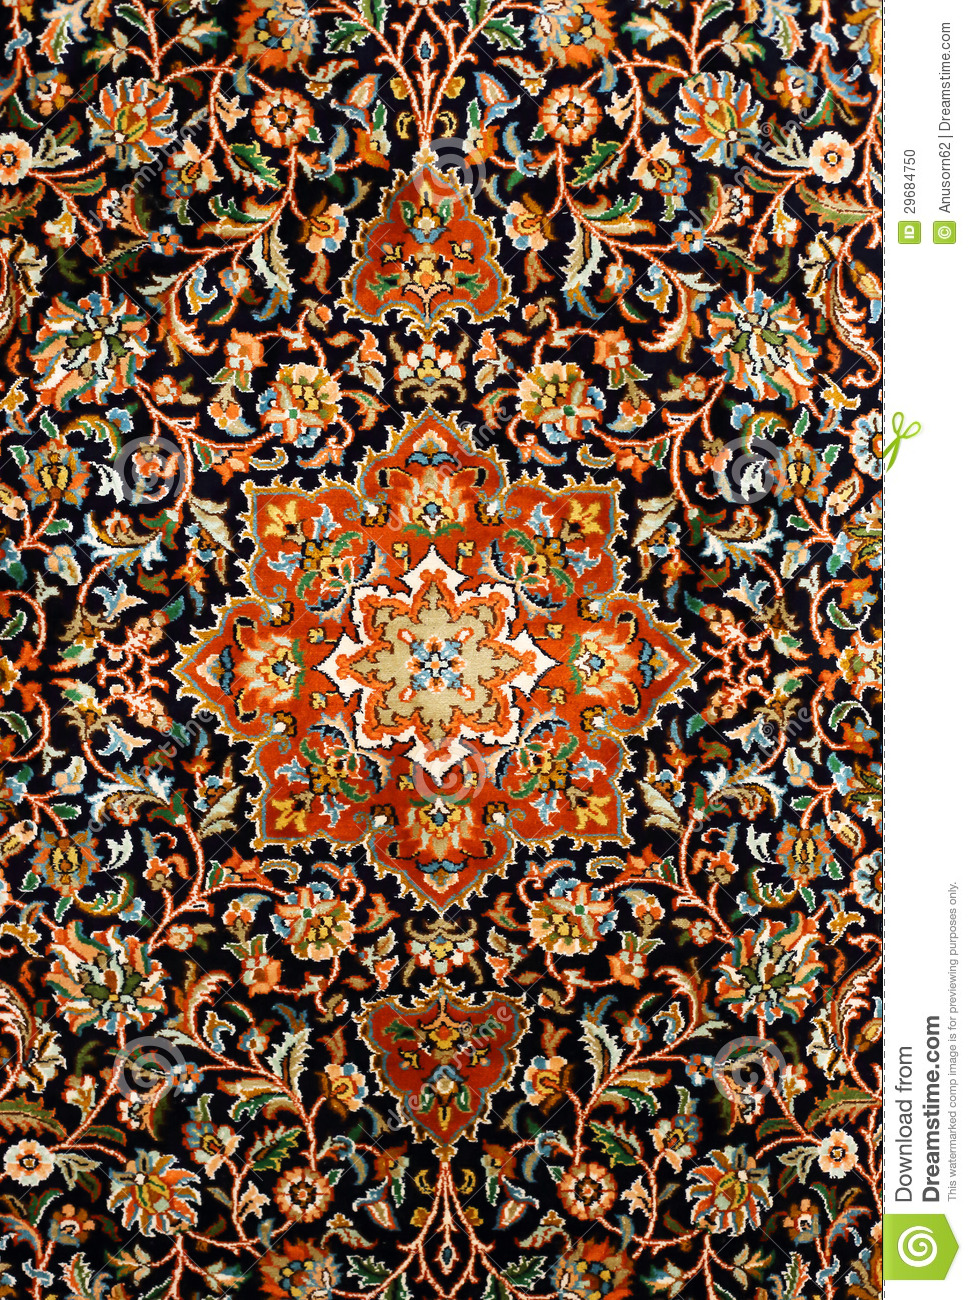 Texture orientale de tapis de perse photo stock image for Architecture perse